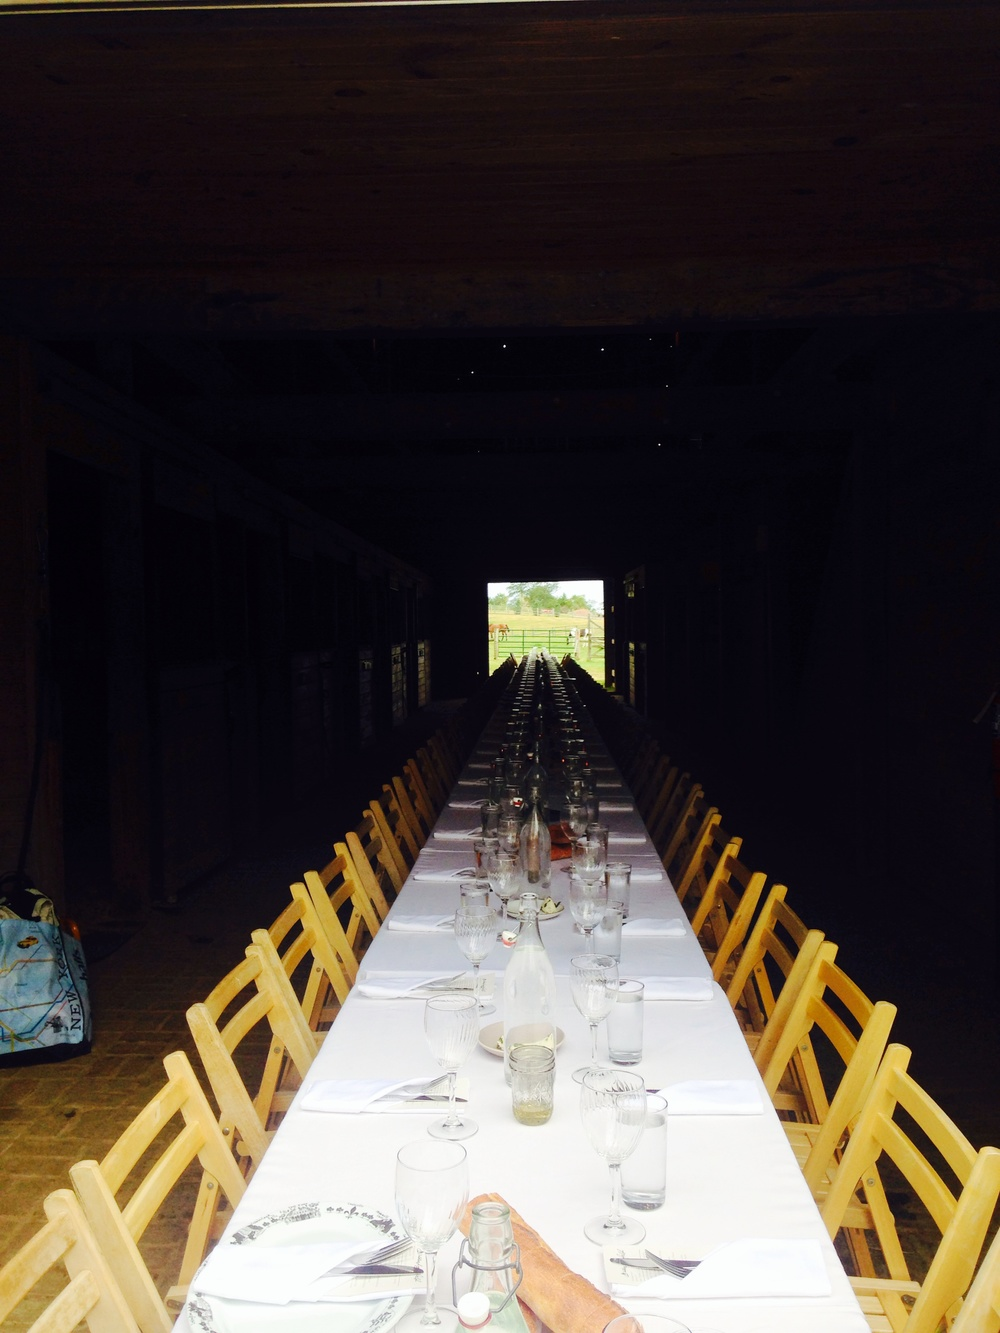 A Dinner in the horse barn at Woodland Farm